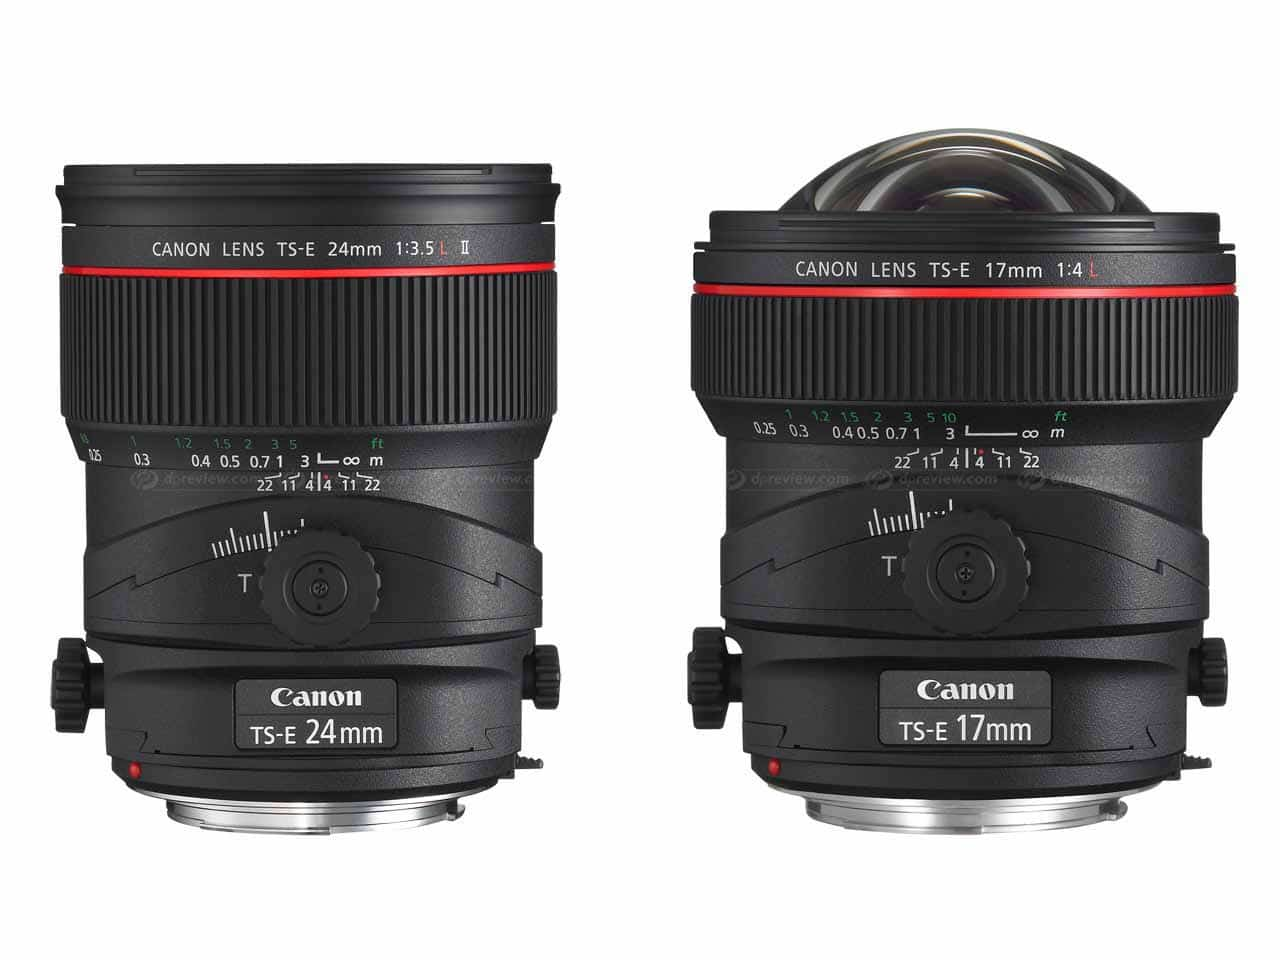 ESSENTIAL GUIDE TO THE TILT-SHIFT LENS The two most popular tilt-shift lenses for architectural photography: the Canon TS-E 24mm f/3.5 L II and Canon TS-E 17mm f/4L